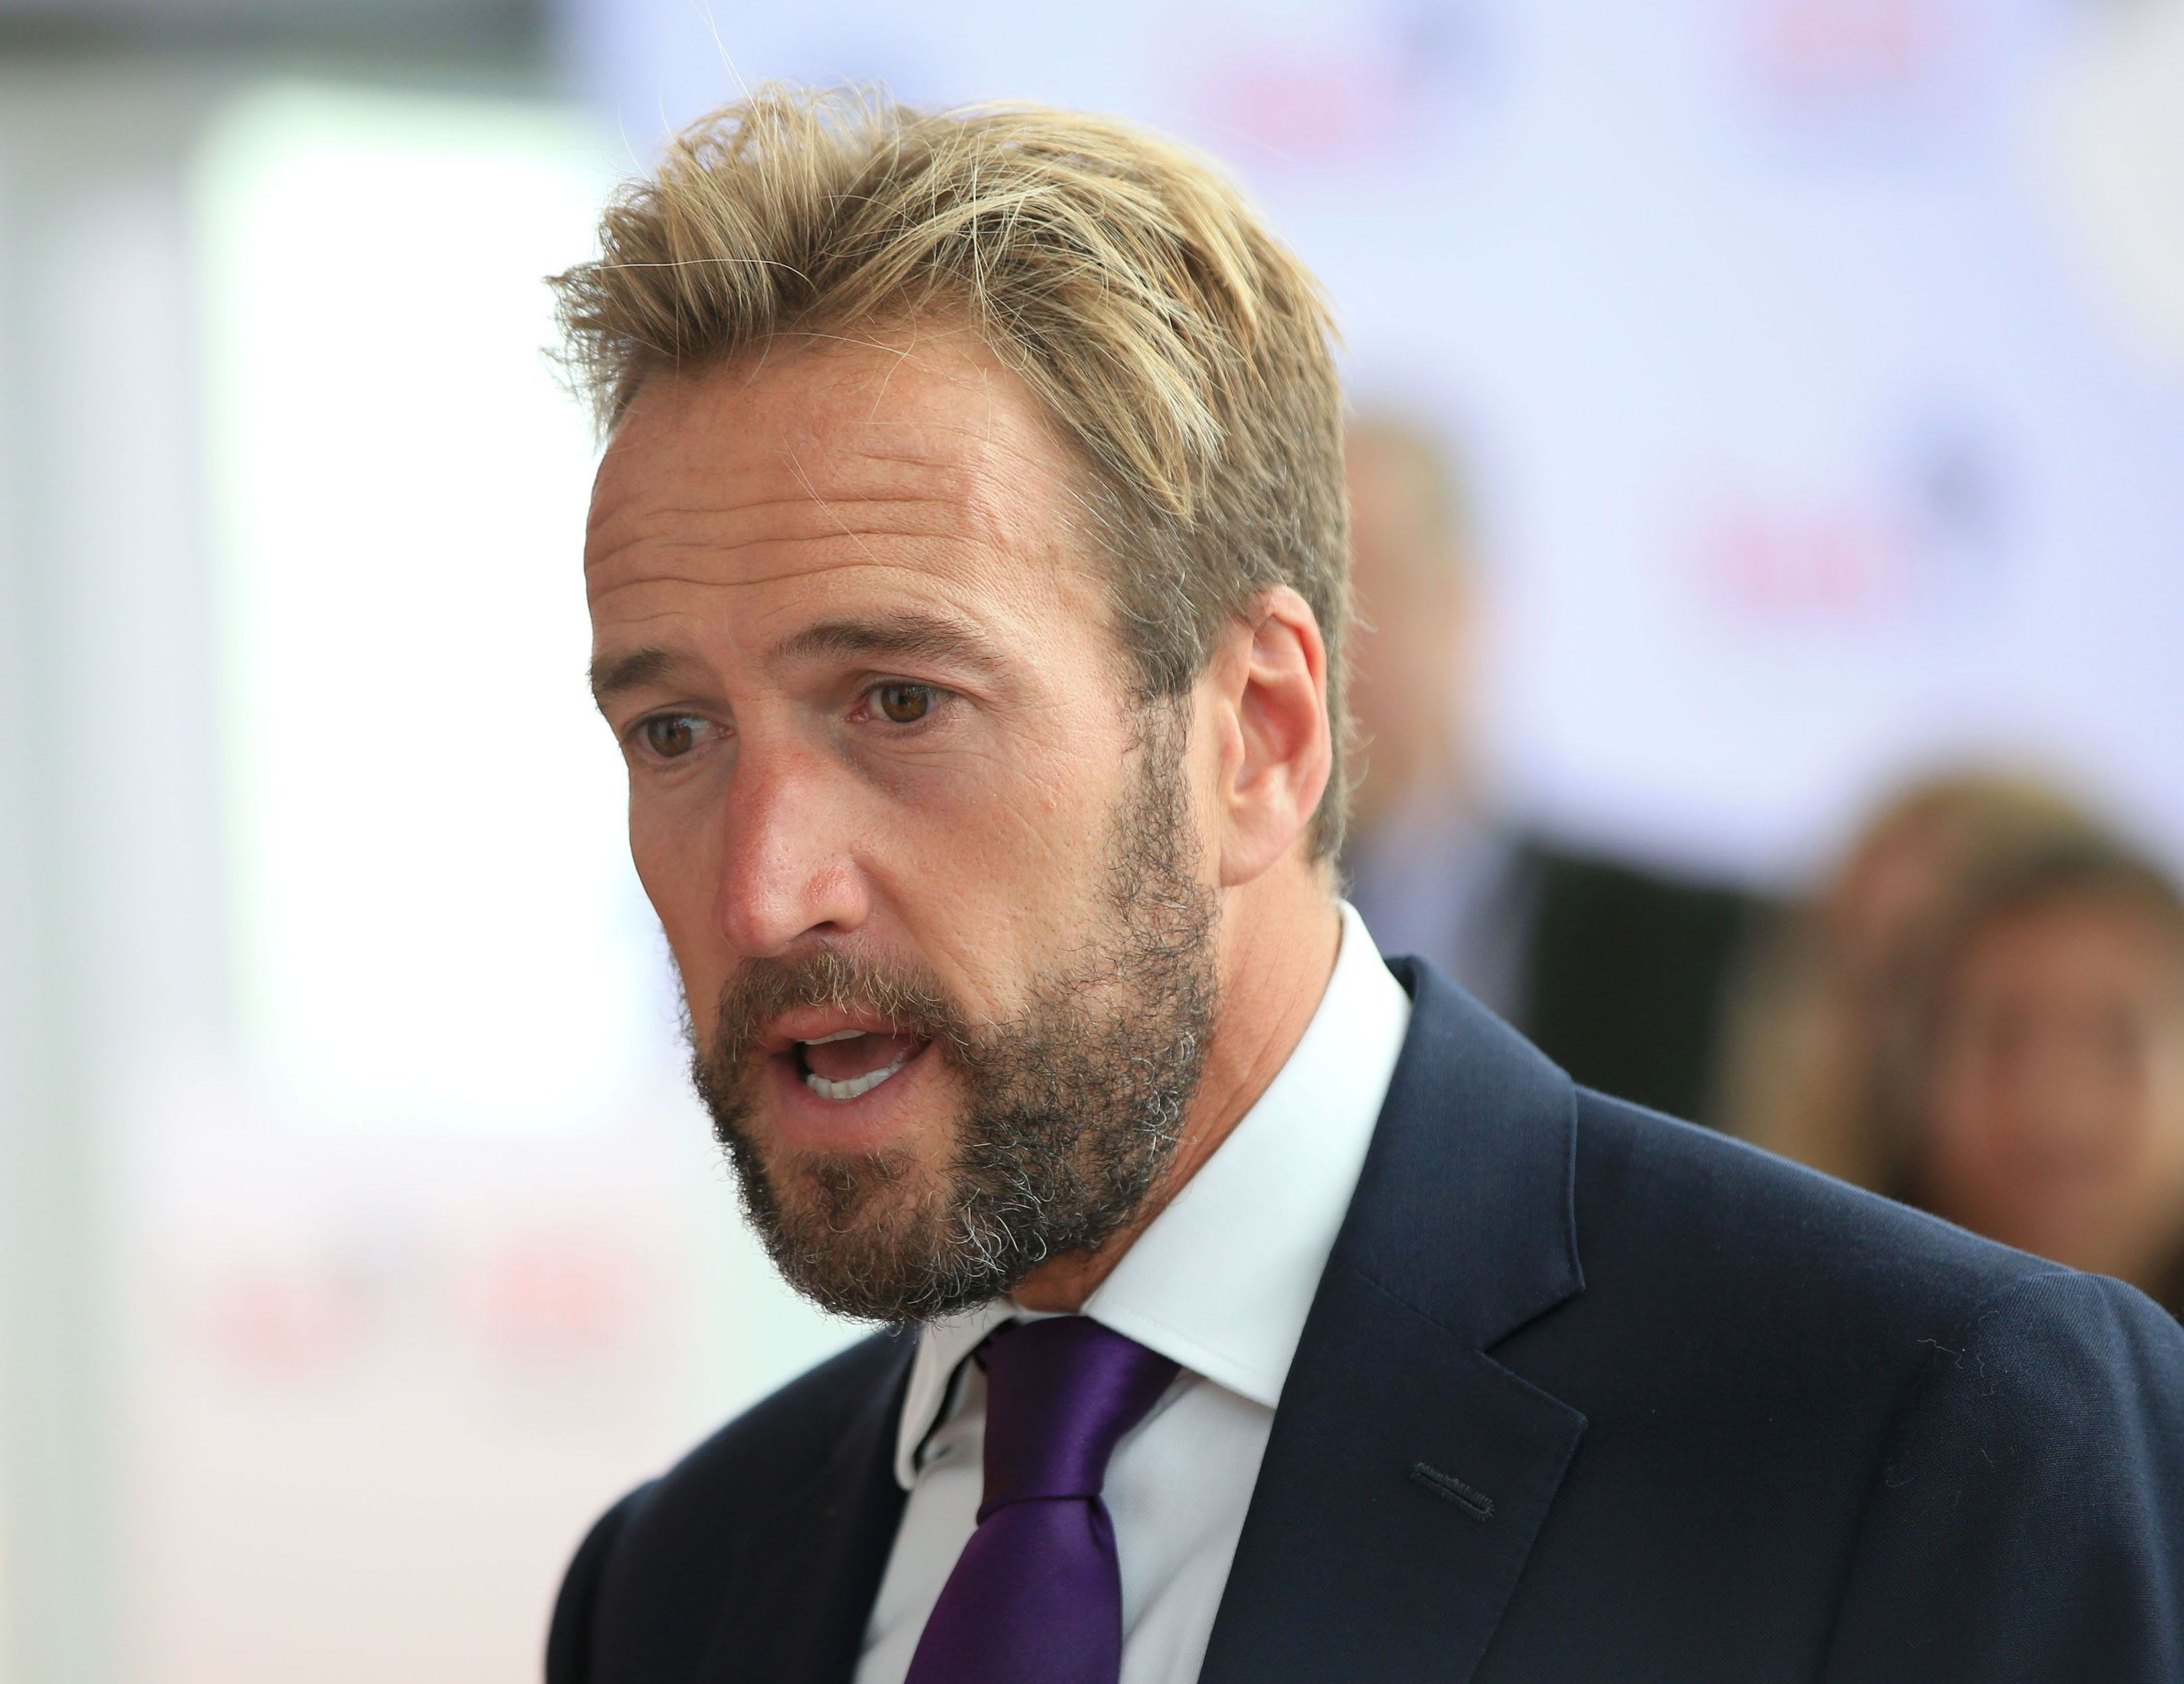 Ben Fogle Says It's Time To 'Look Very Closely' At How Zoos Operate Following Lynx